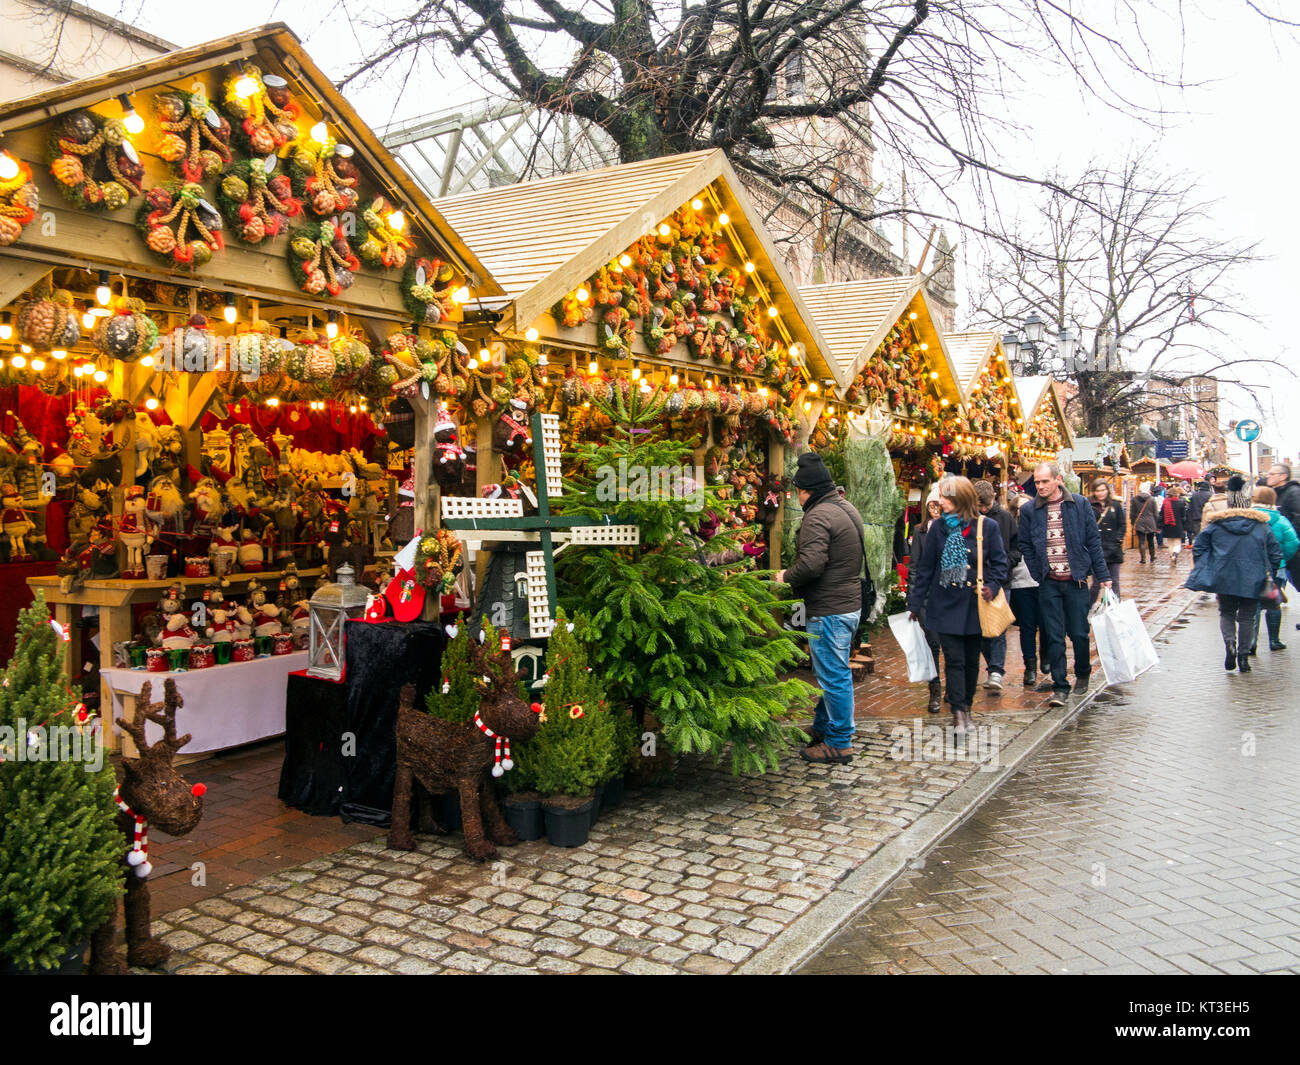 Christmas shoppers shopping at the annual Christmas market in the roman city of Chester England - Stock Image